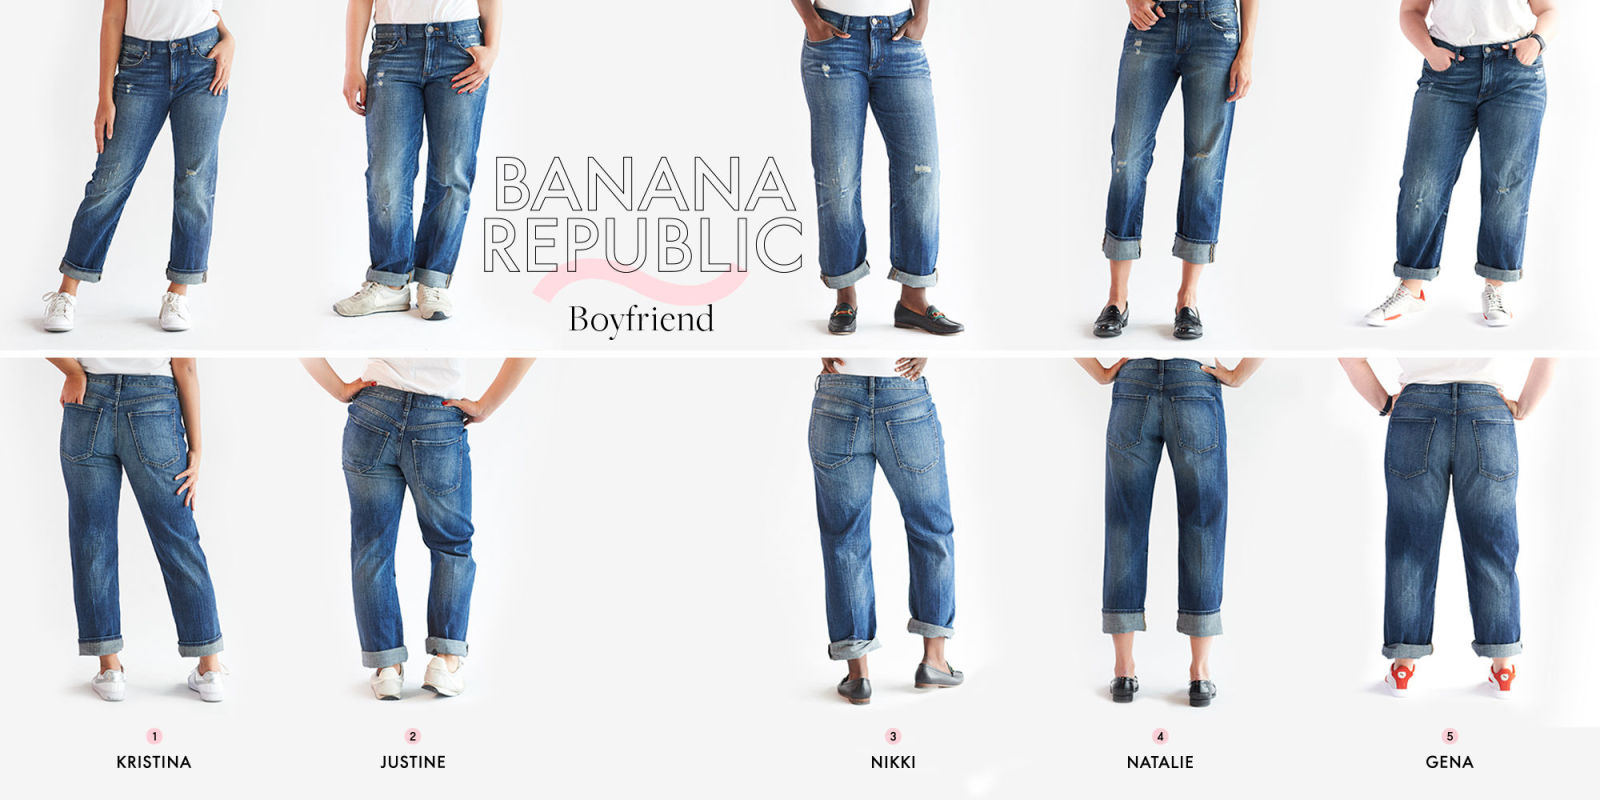 10 Best Types of Jeans for Women – Flattering Denim Styles for All ...